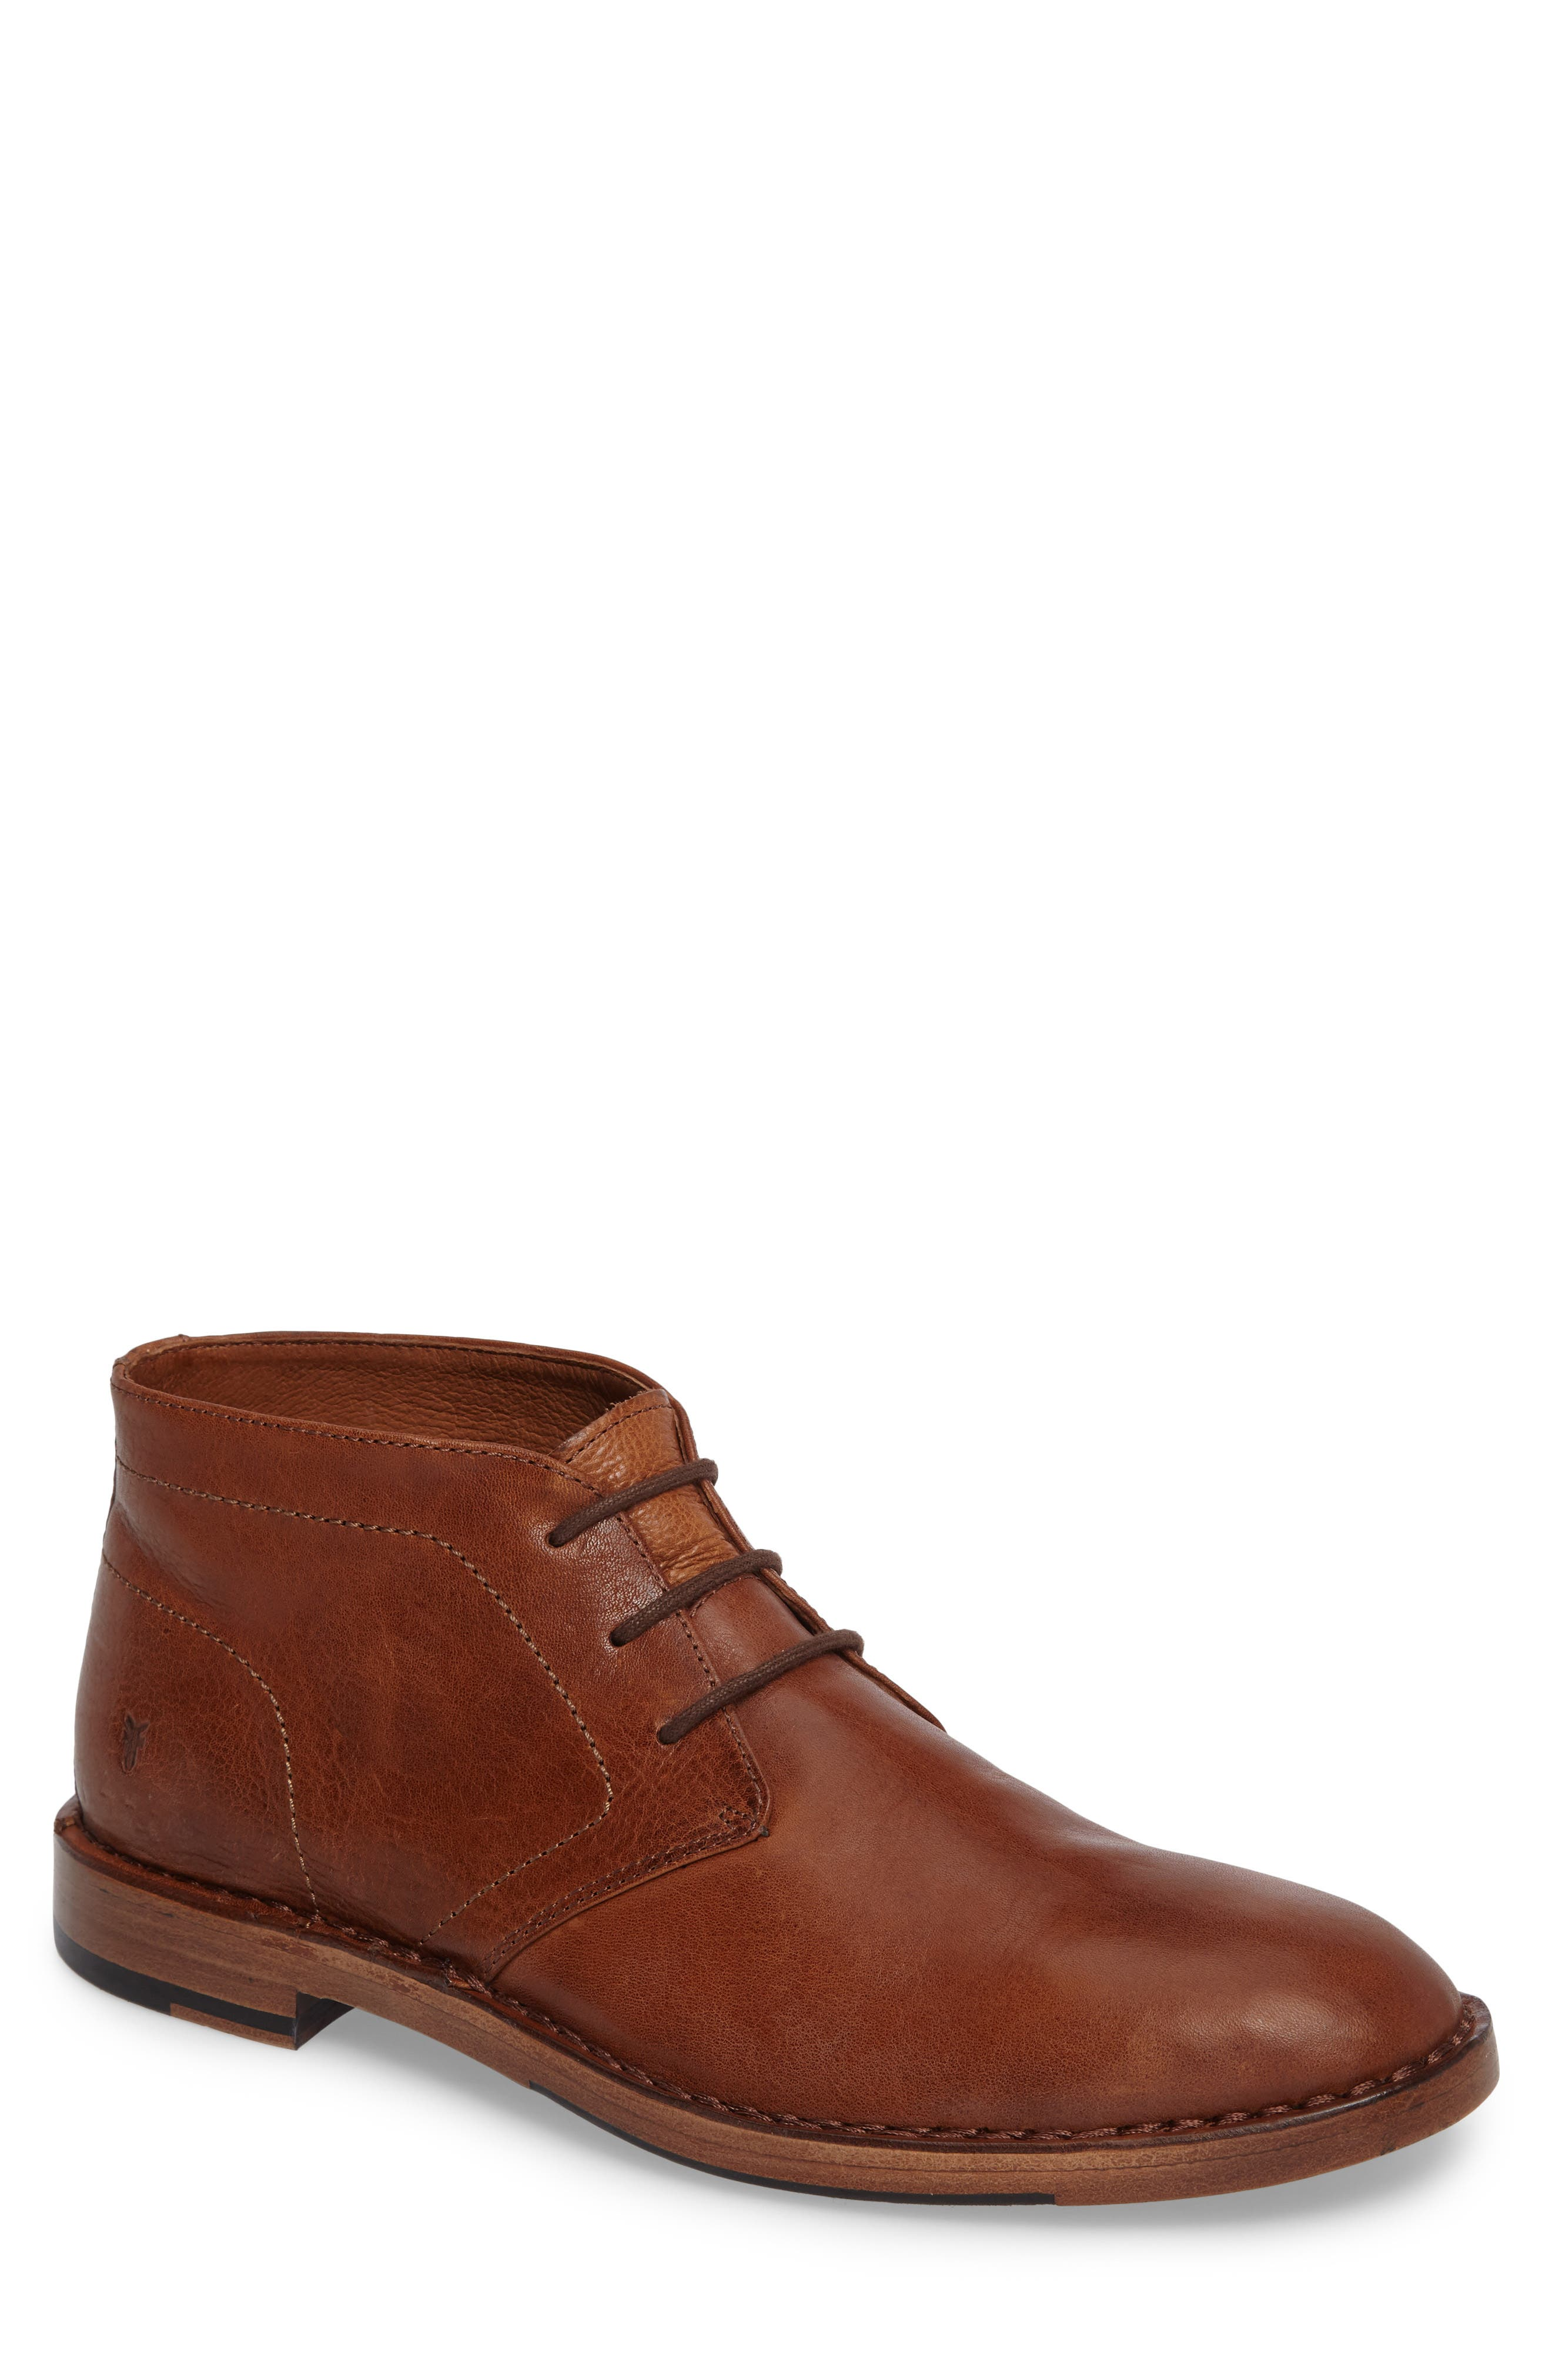 Mark Chukka Boot,                             Main thumbnail 1, color,                             Copper Leather